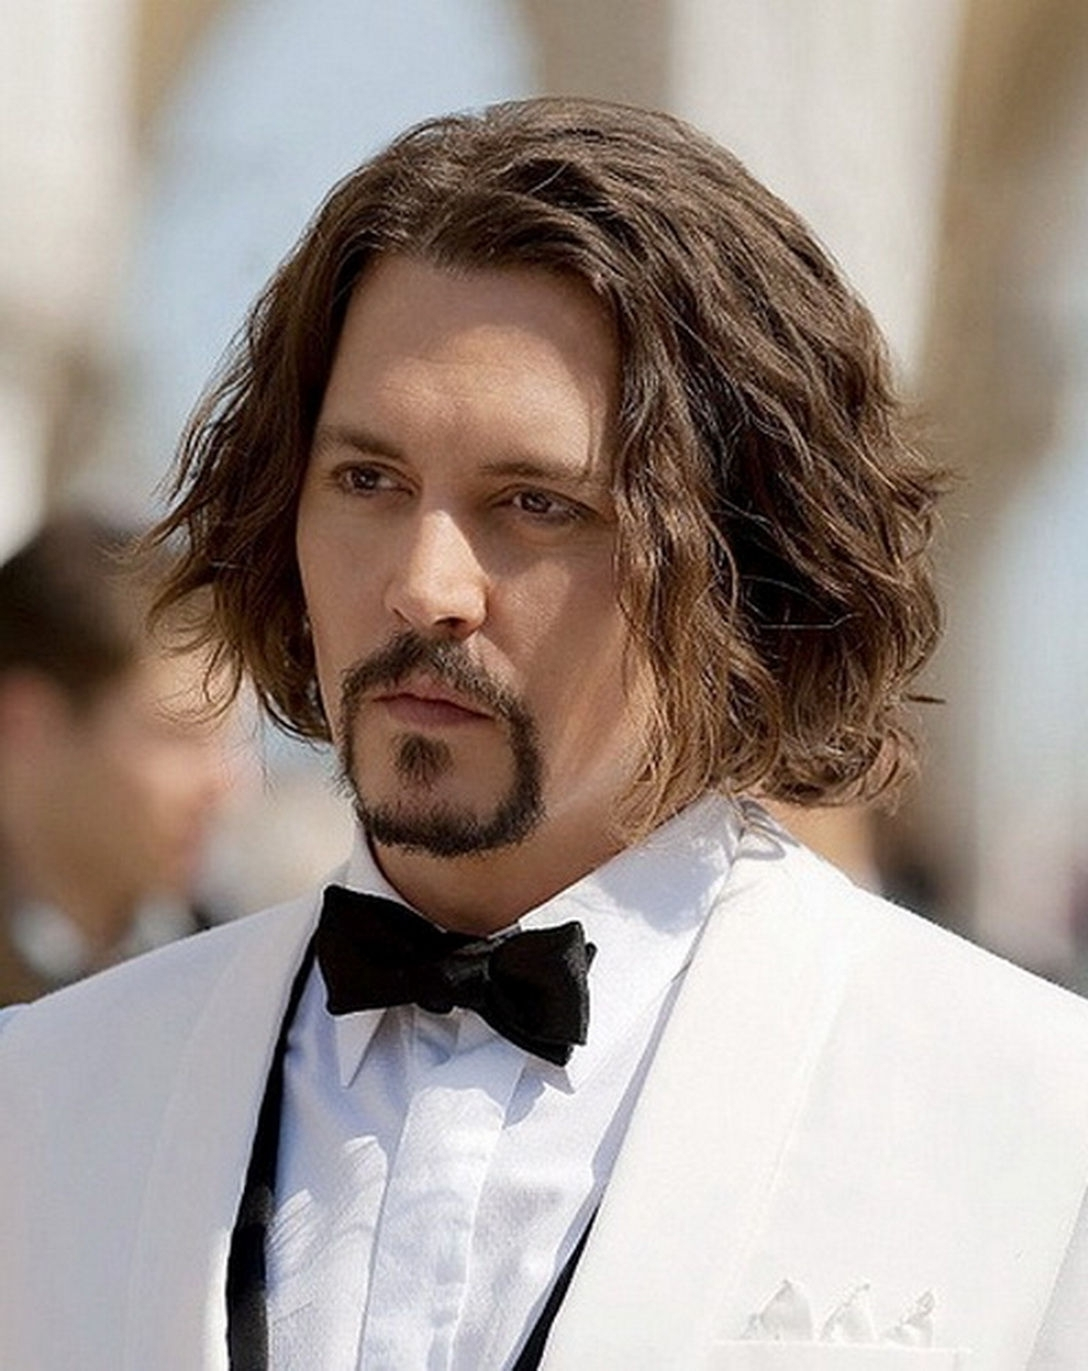 85 Coolest Mid Length Hairstyles That Won'T Make You Look Messy 40+ Stunning Latest Medium Hairstyles For Men